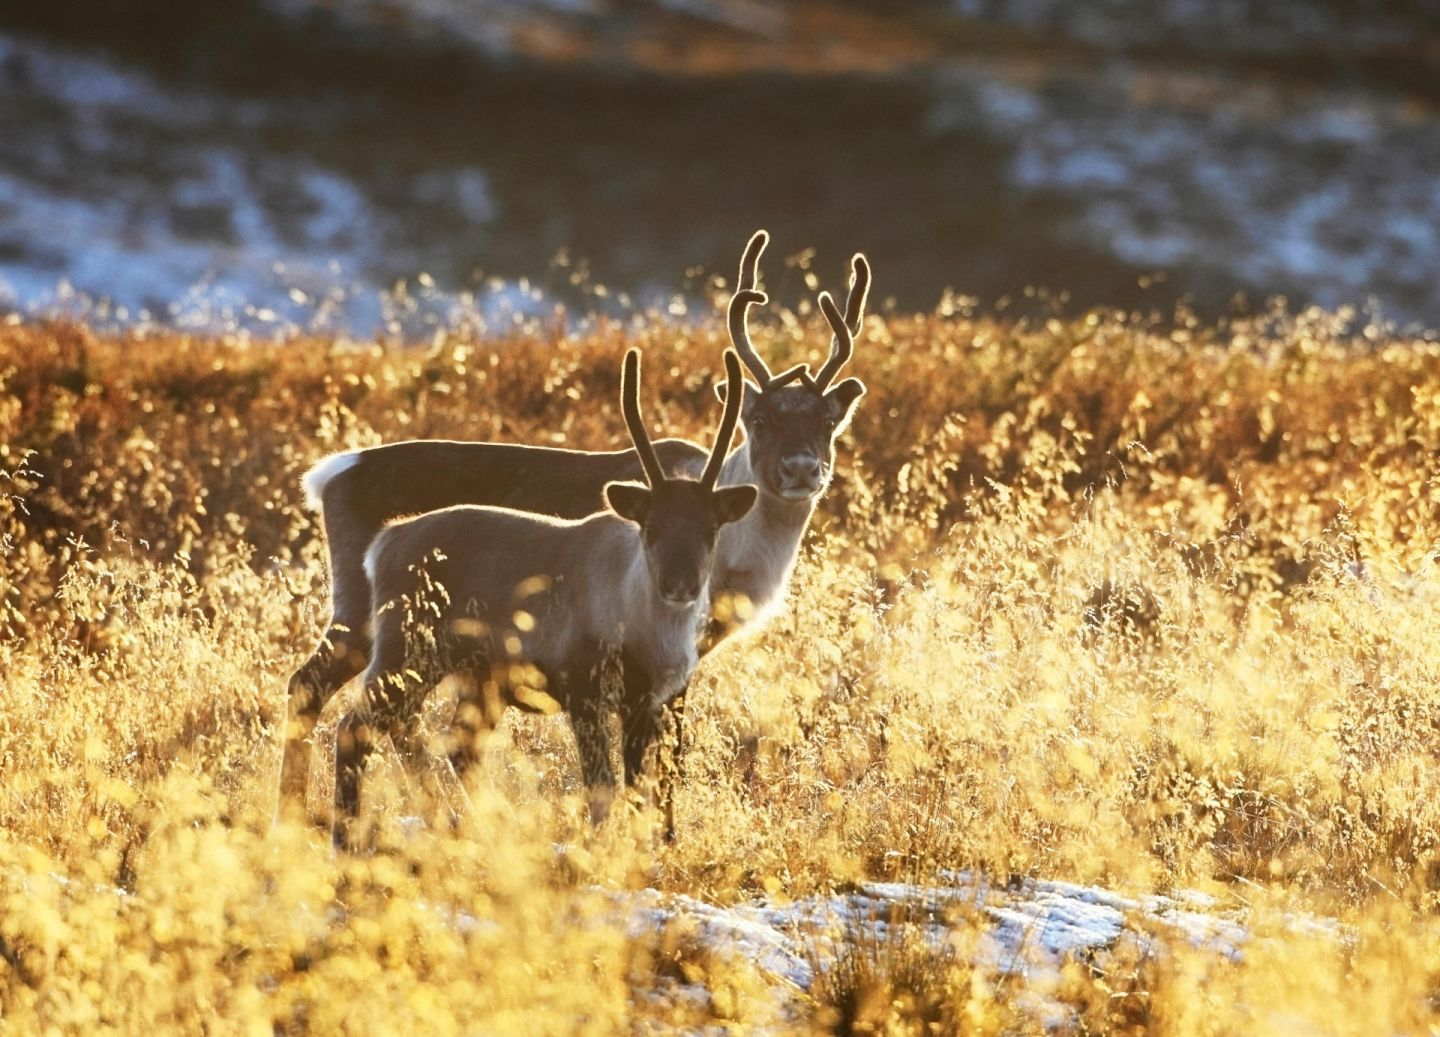 Reindeer on an autumn day in Lapland